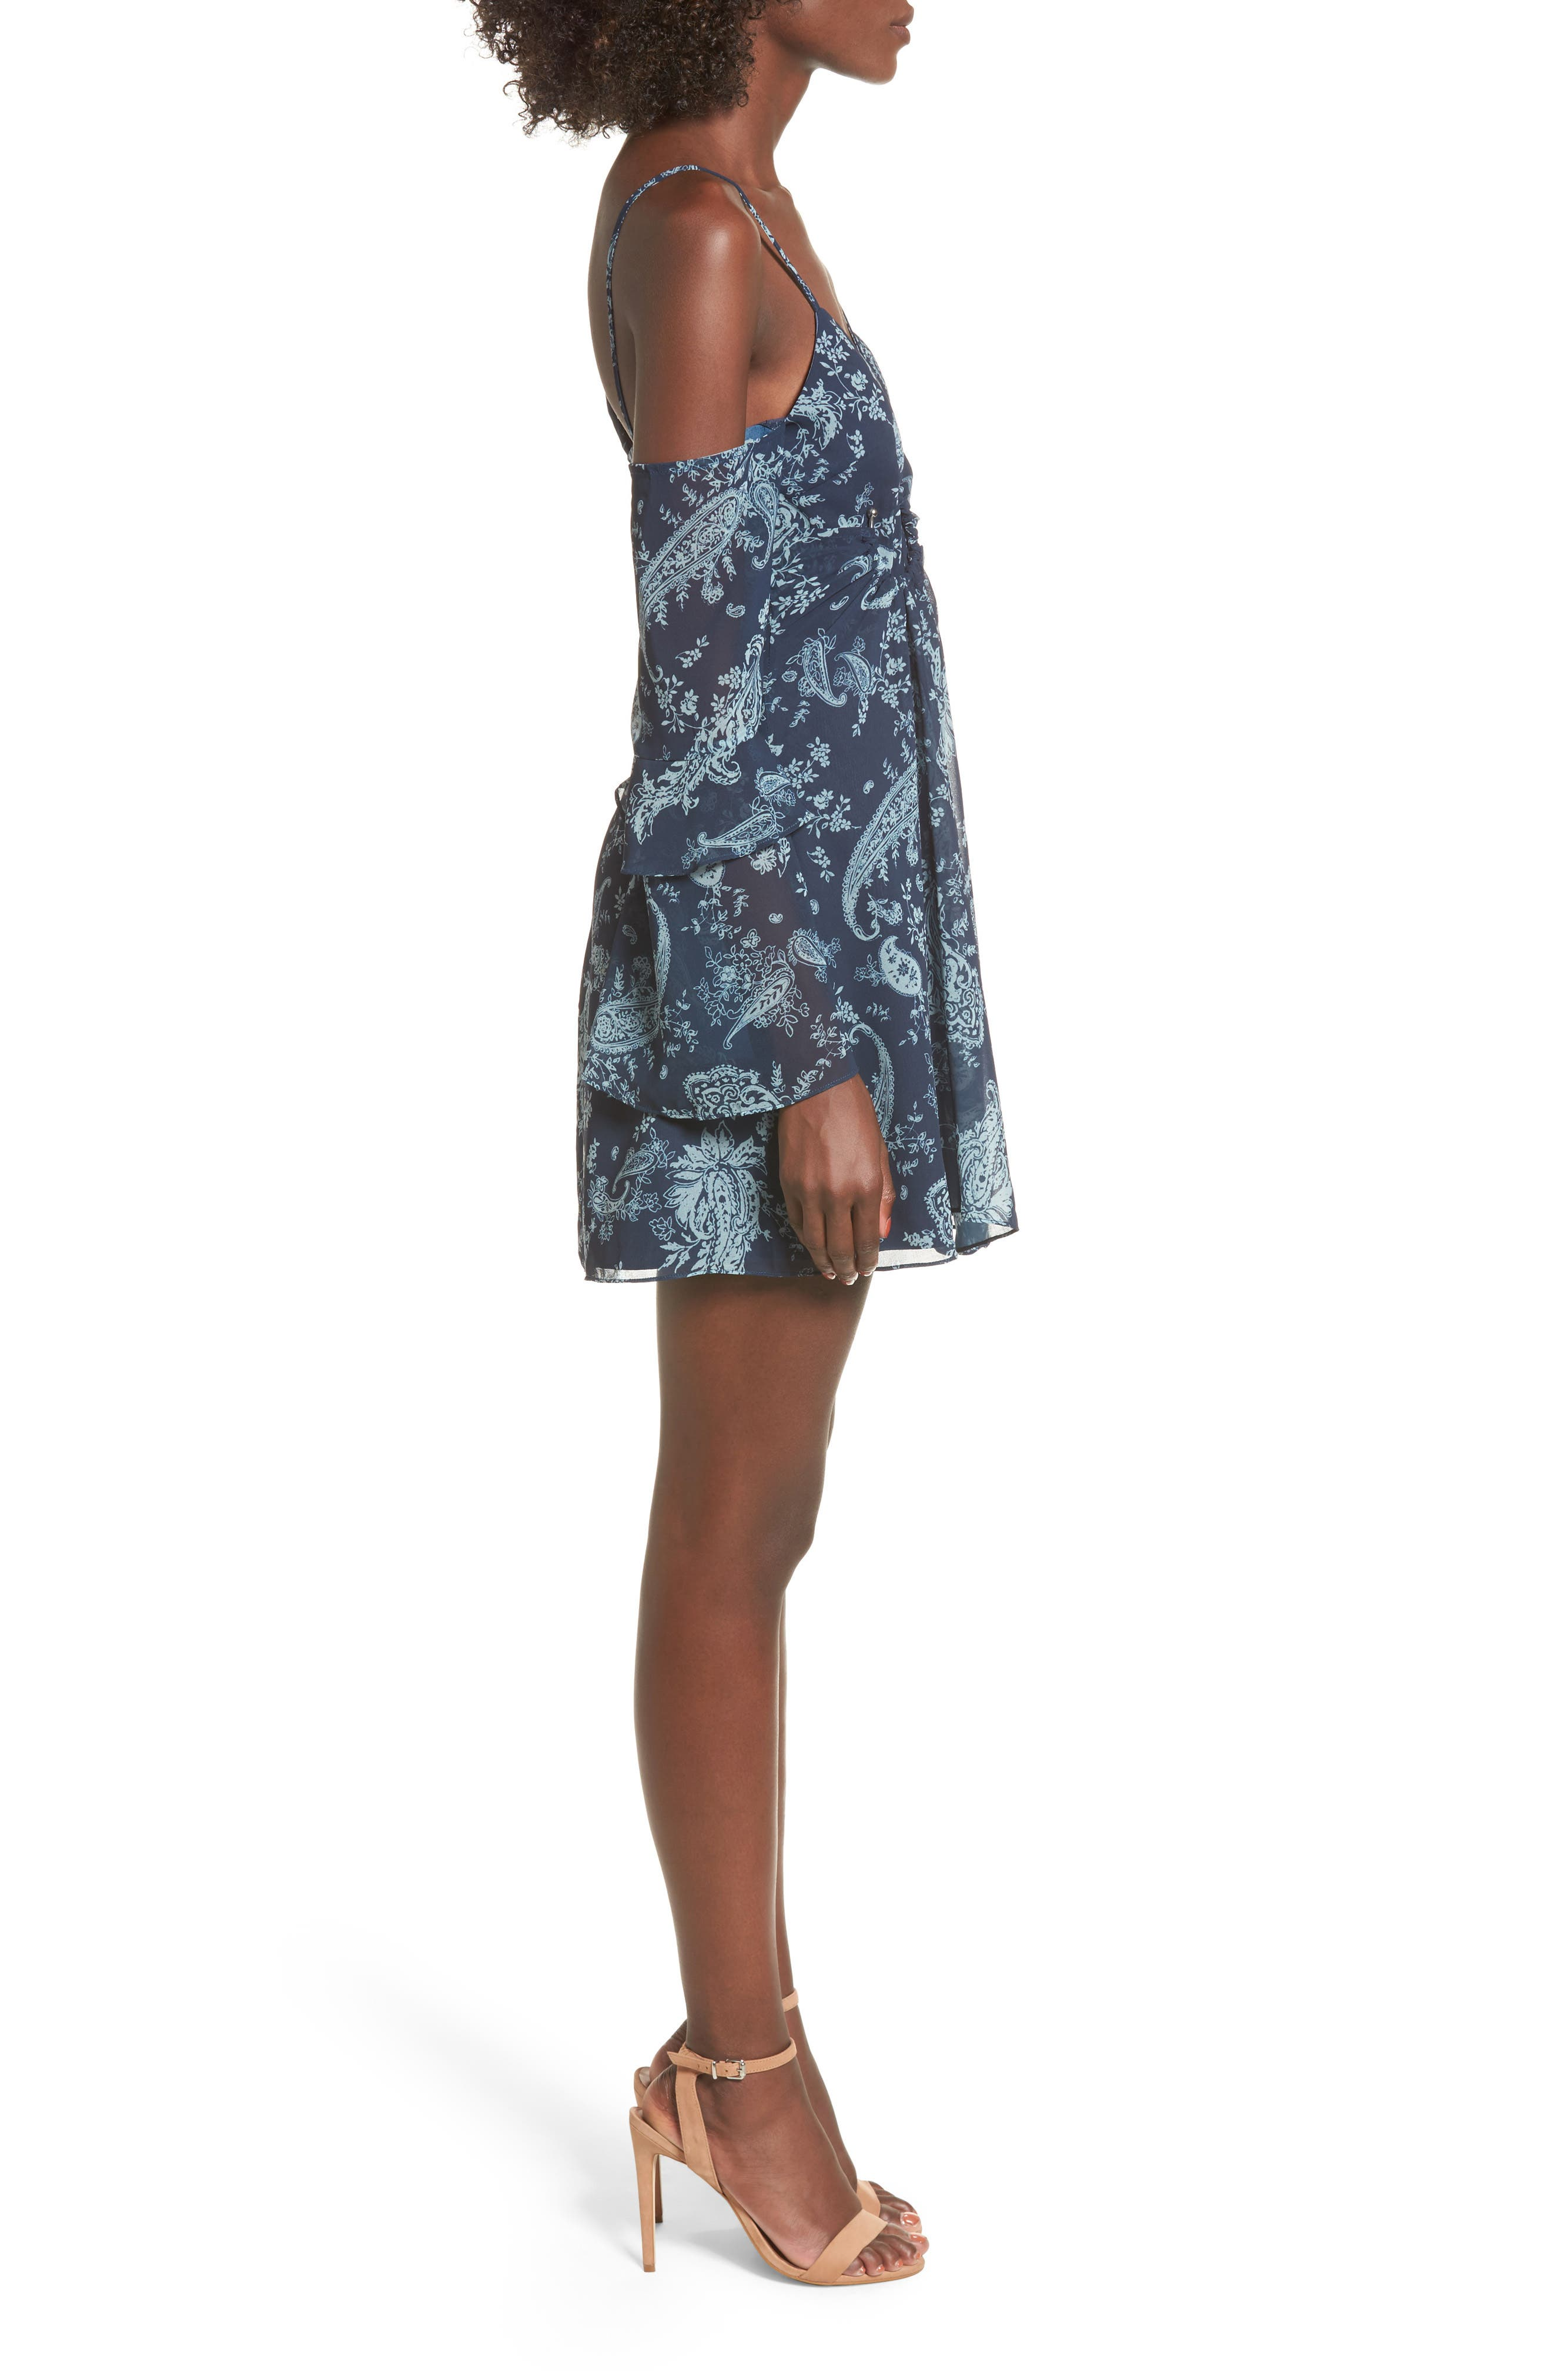 Go With It Minidress,                             Alternate thumbnail 3, color,                             401